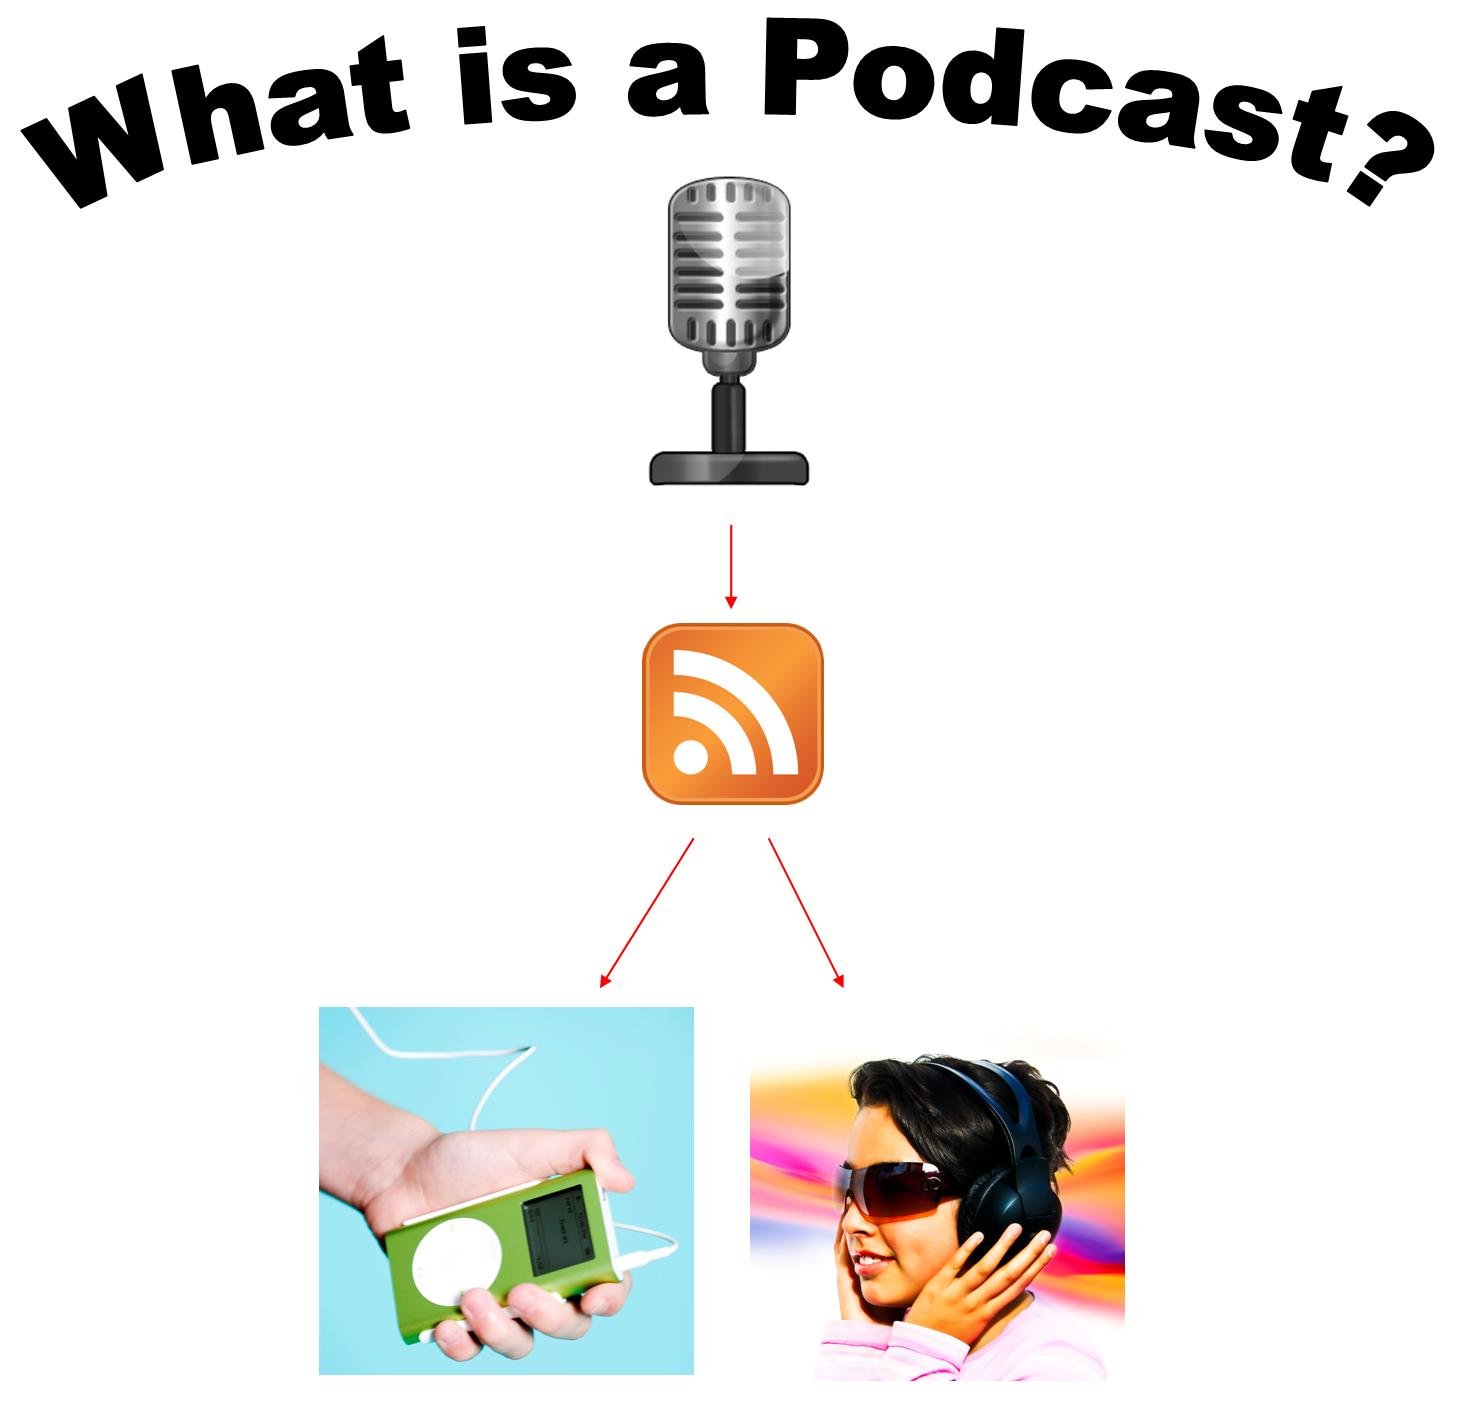 What is a podcast and what is it for? 55